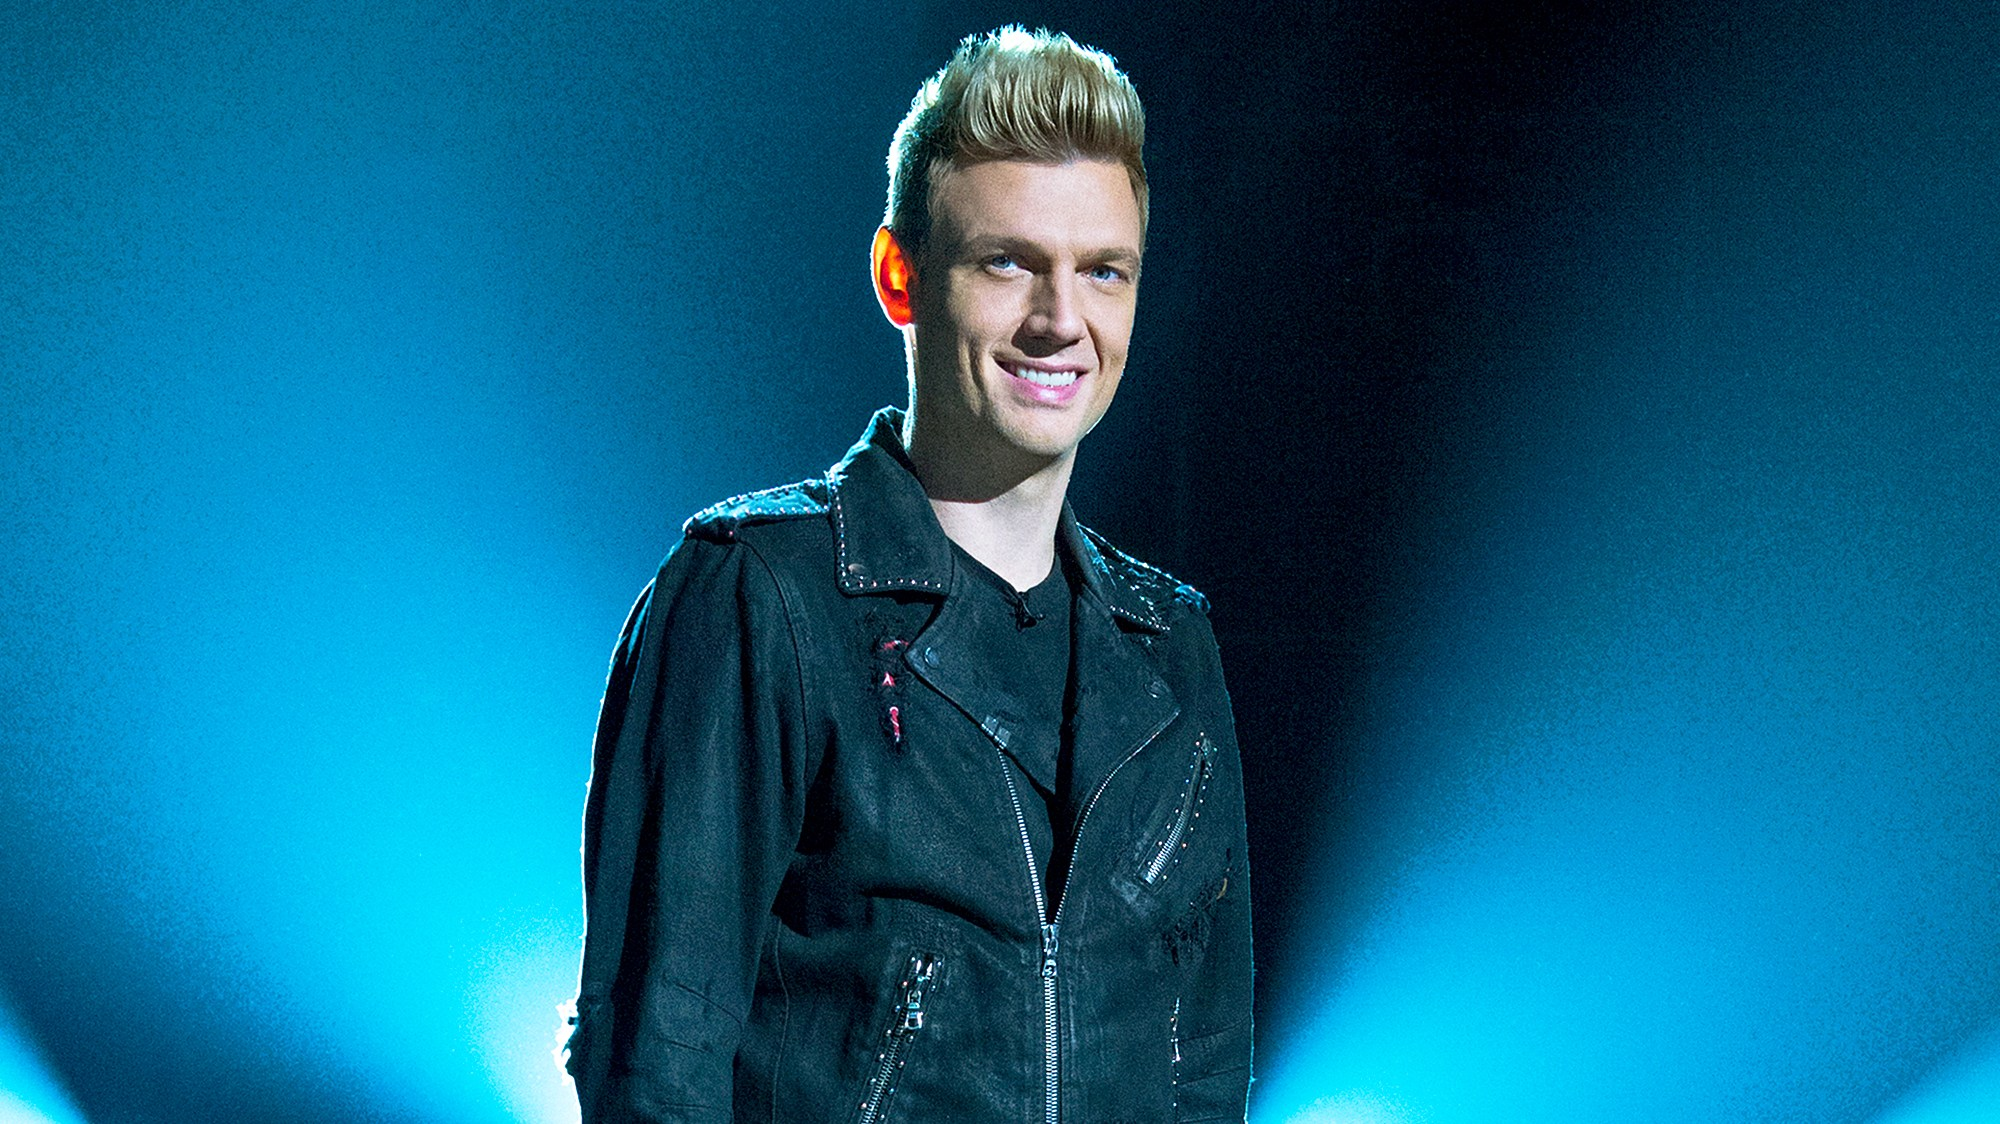 Nick Carter Boy Band